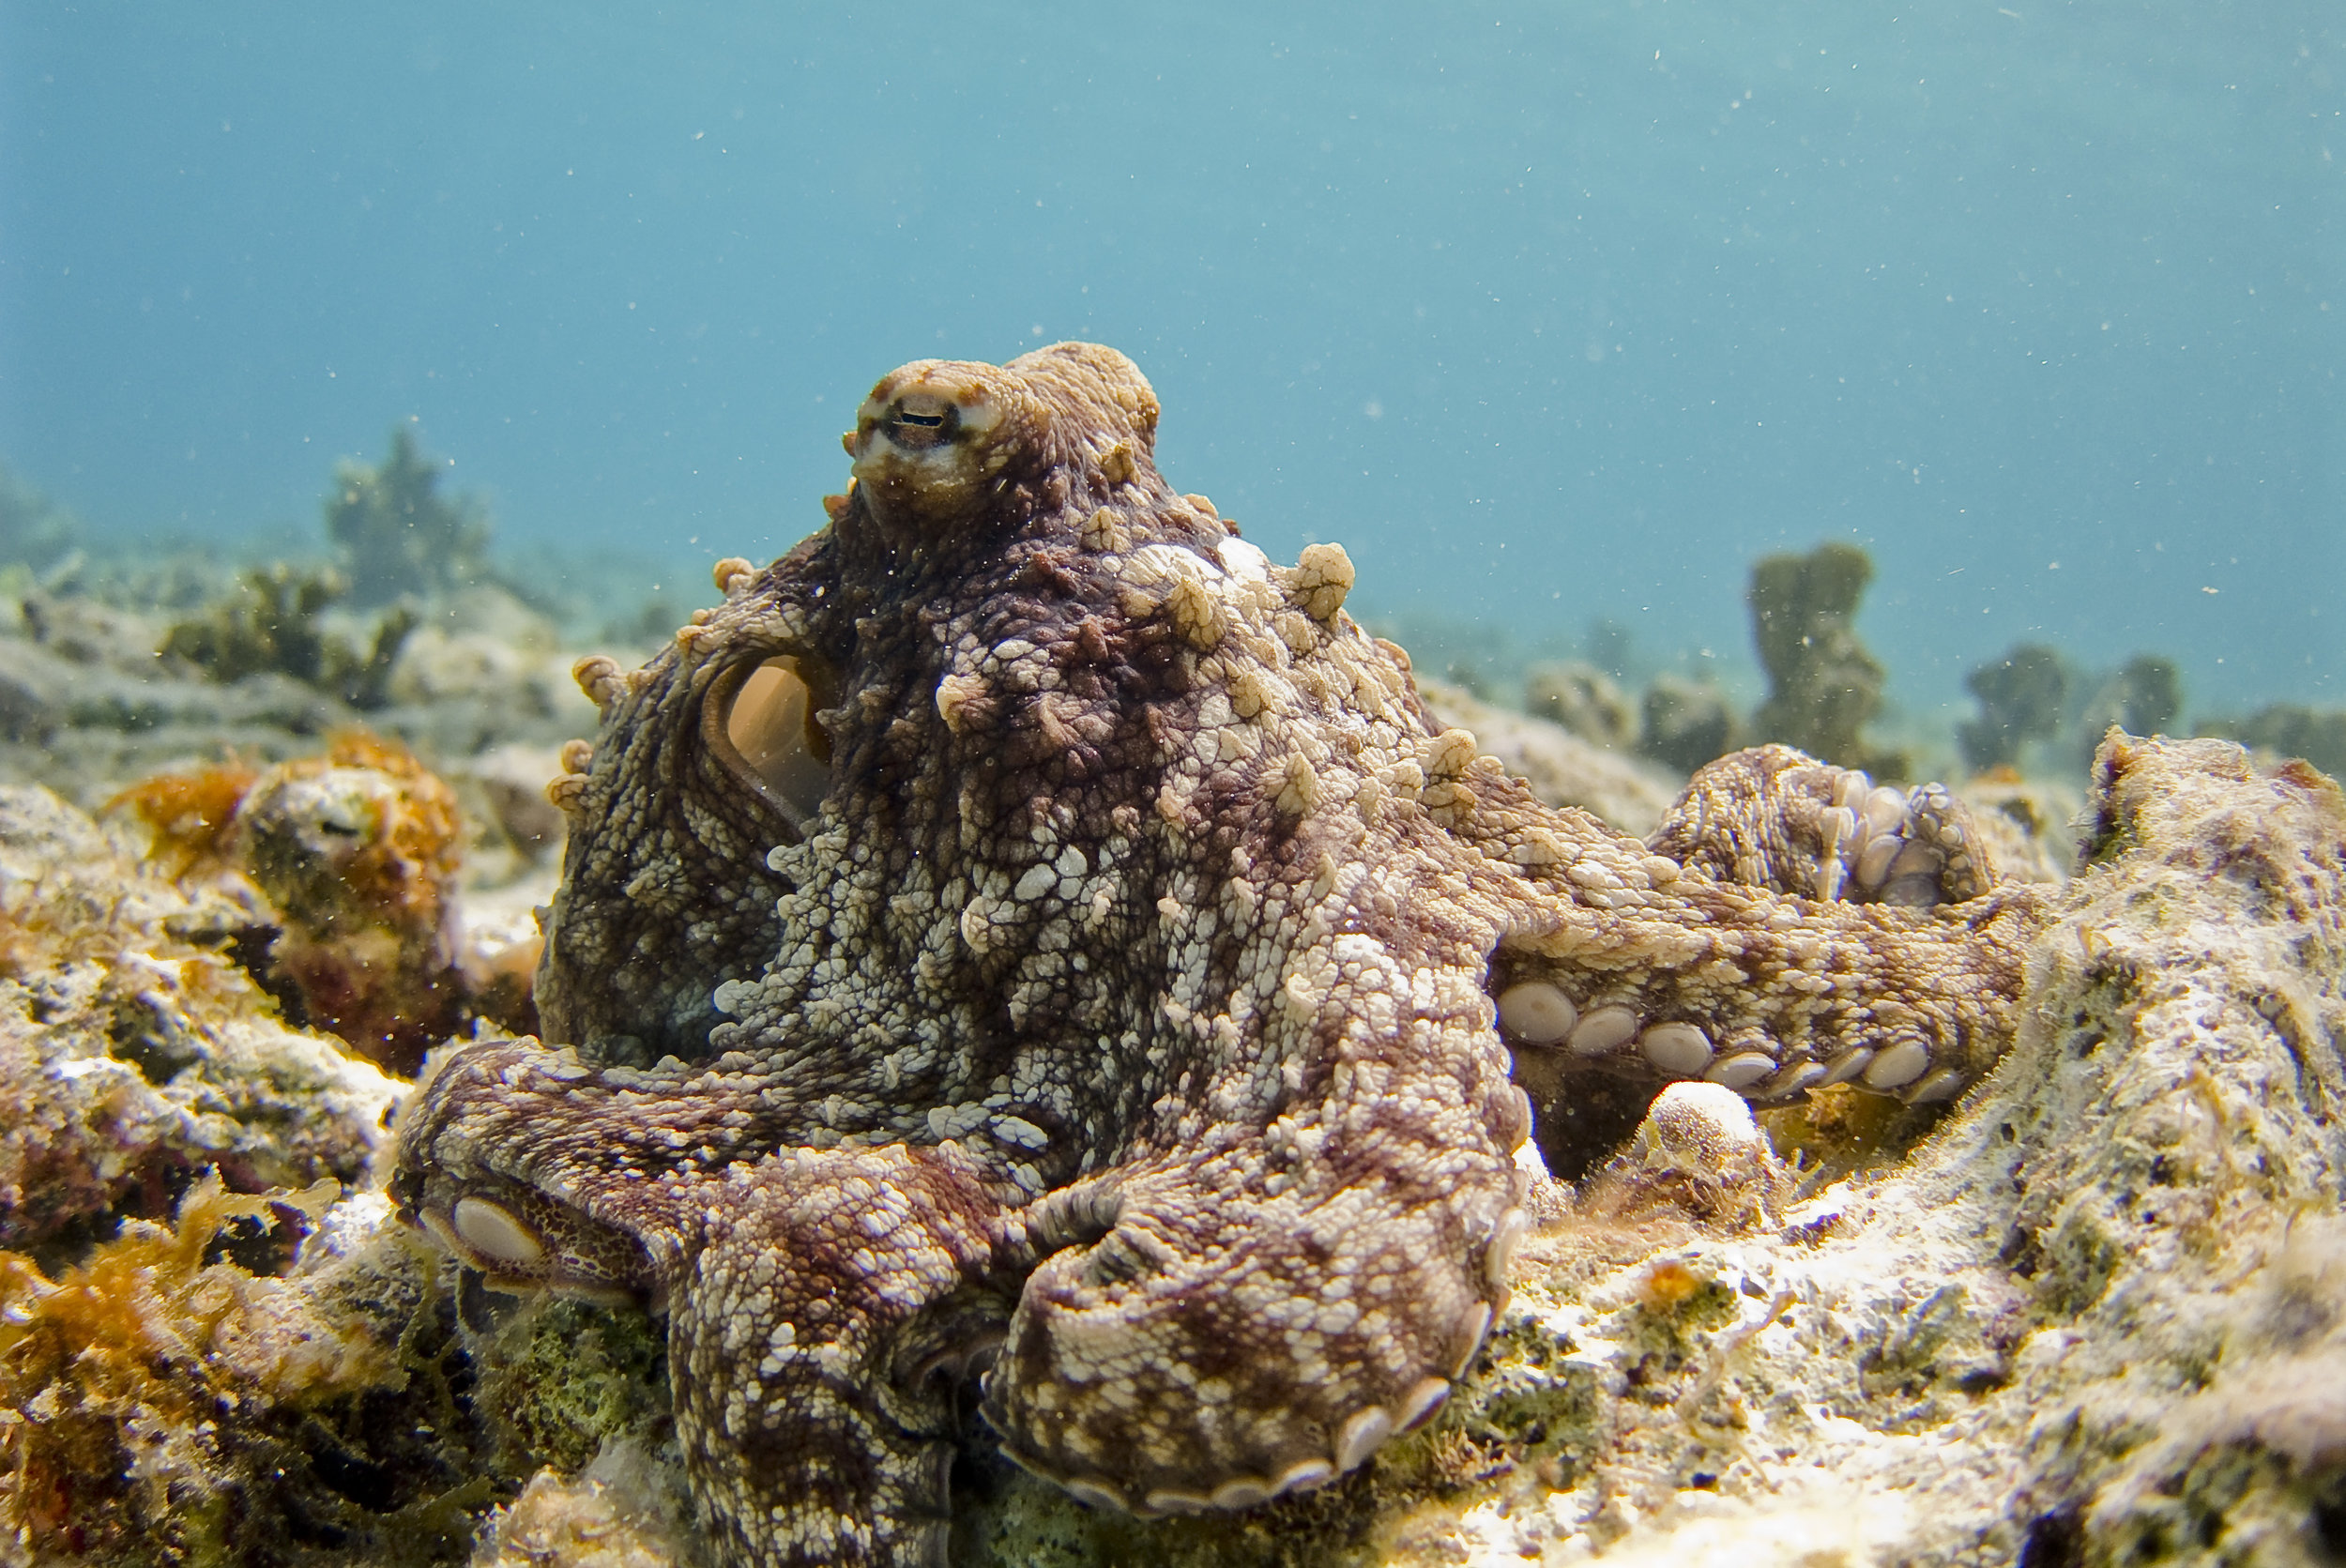 A friendly octopus disguised on a reef. Photo credit: Vlad Tchompalov